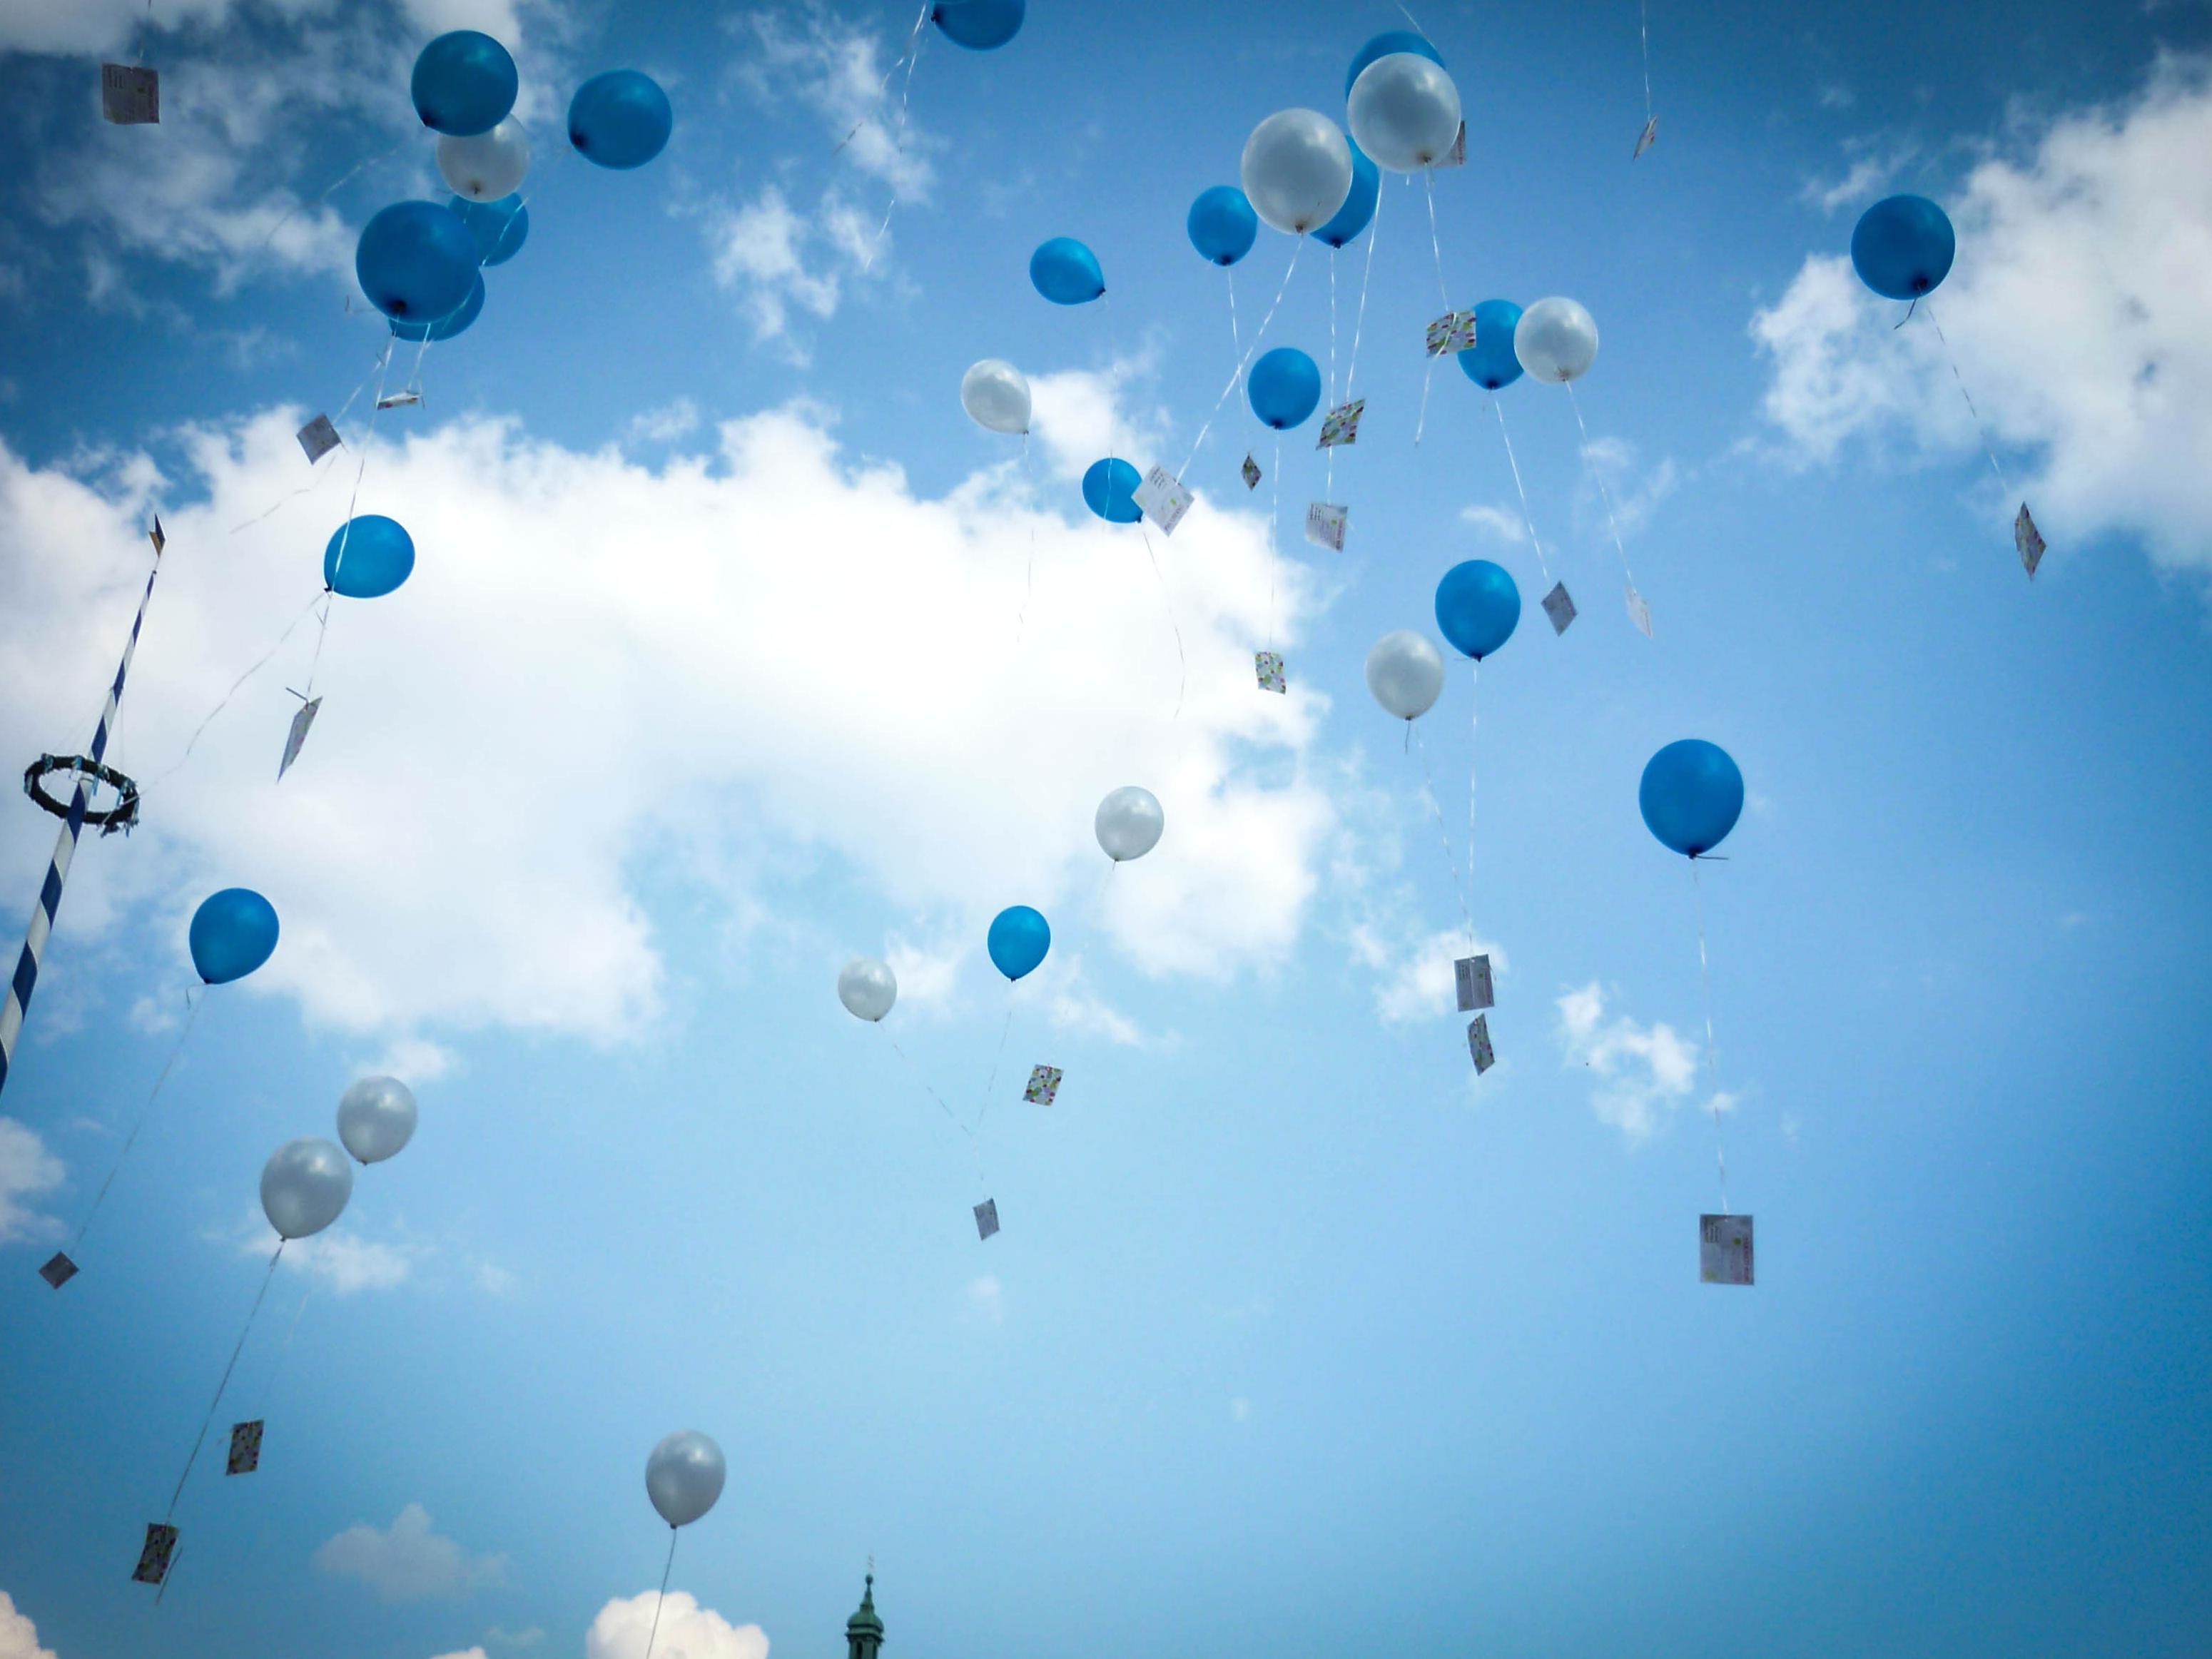 Free picture: air, blue sky, cloud, balloon, message